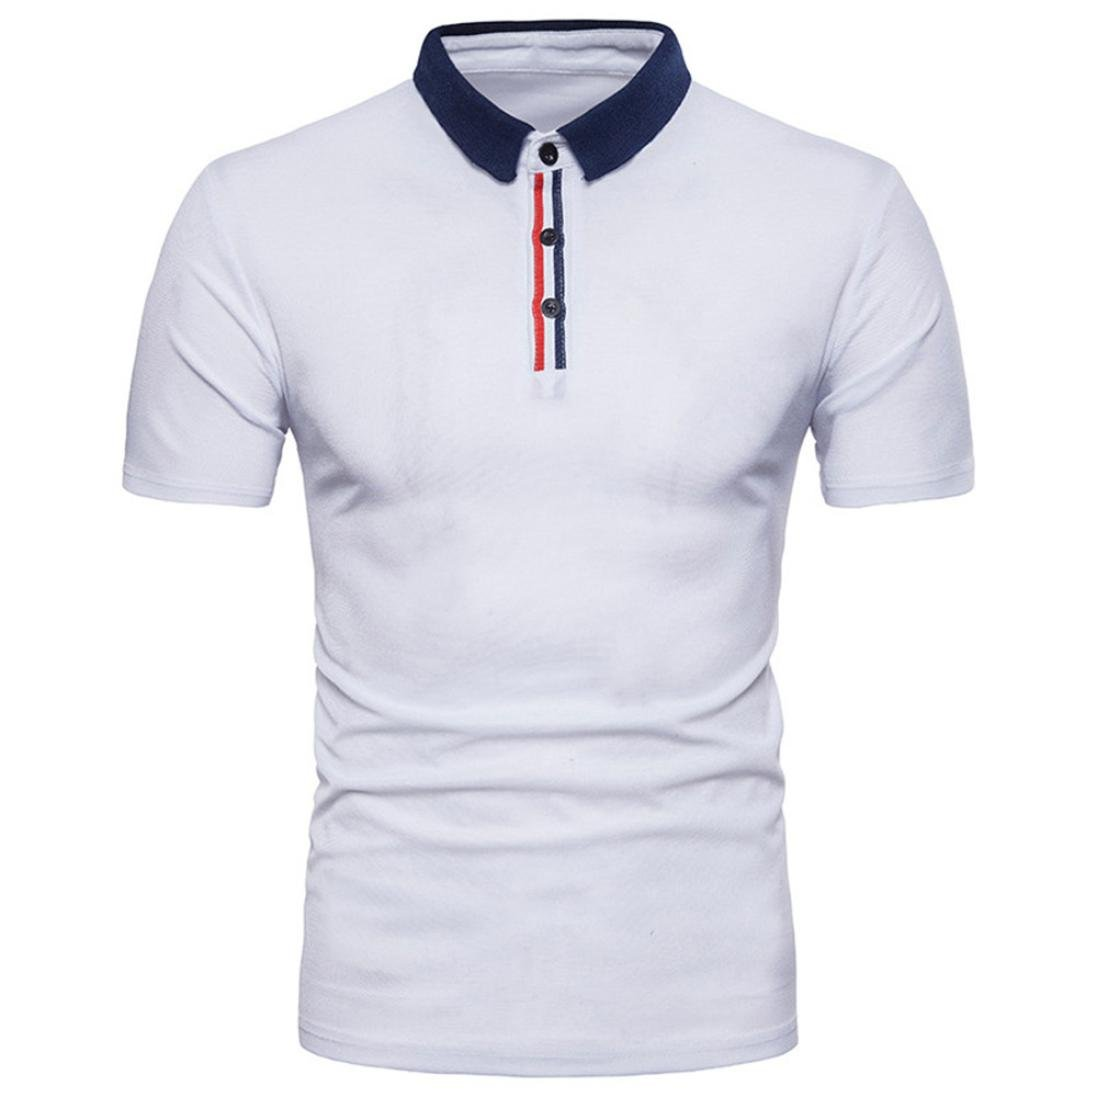 Anxinke Men Solid Short Sleeve Button-Down Casual Slim Fit Shirts (S, White B)